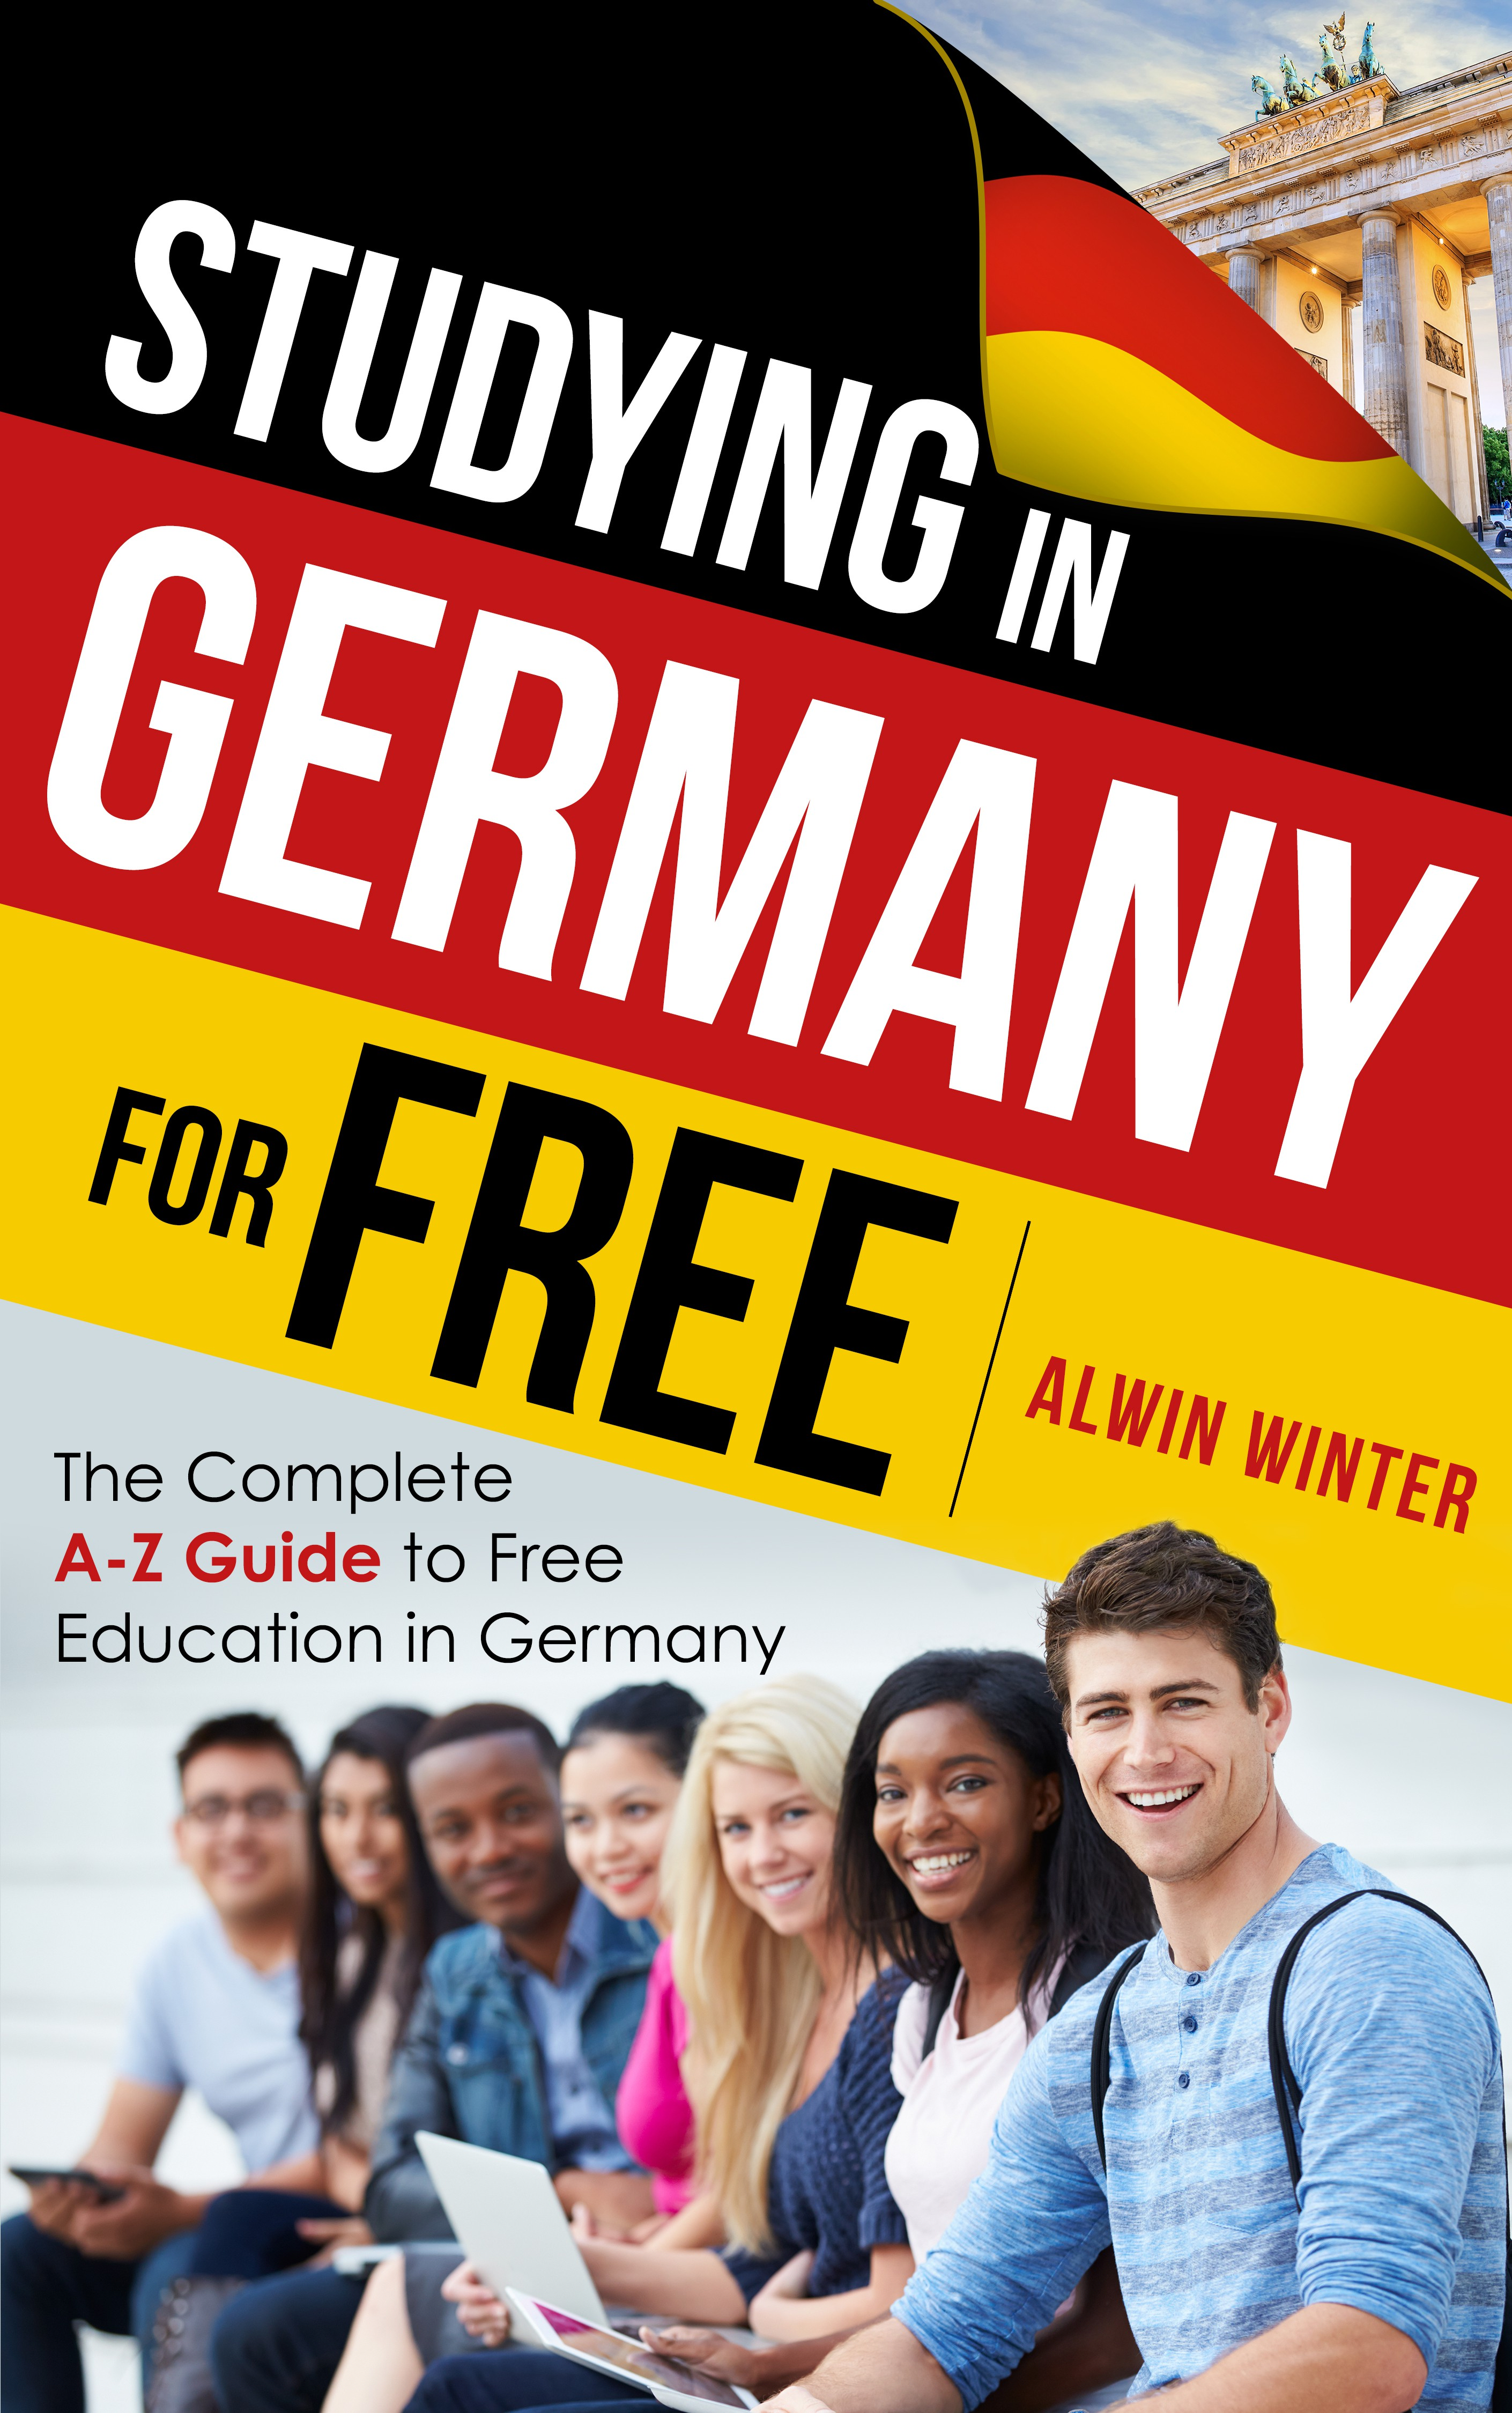 Studying in Germany for free! Create an e-book cover for an educational guide